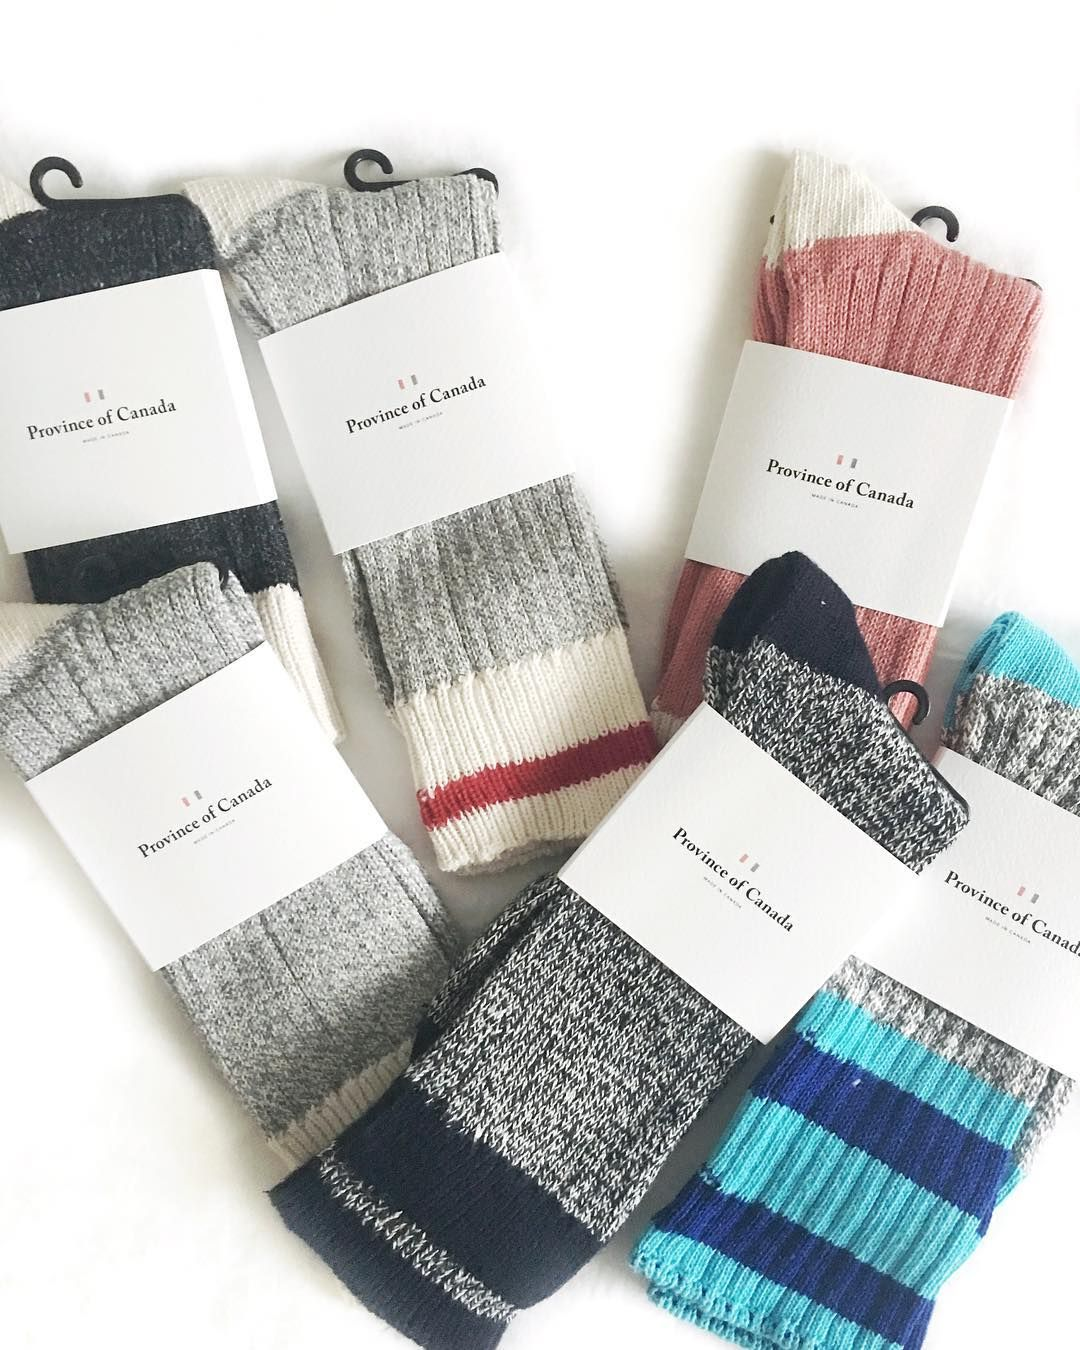 f1266fc792407 1 For 1 Sock Program. We donate a pair to a Canadian homeless shelter for  every pair purchased. provinceofcanada.com